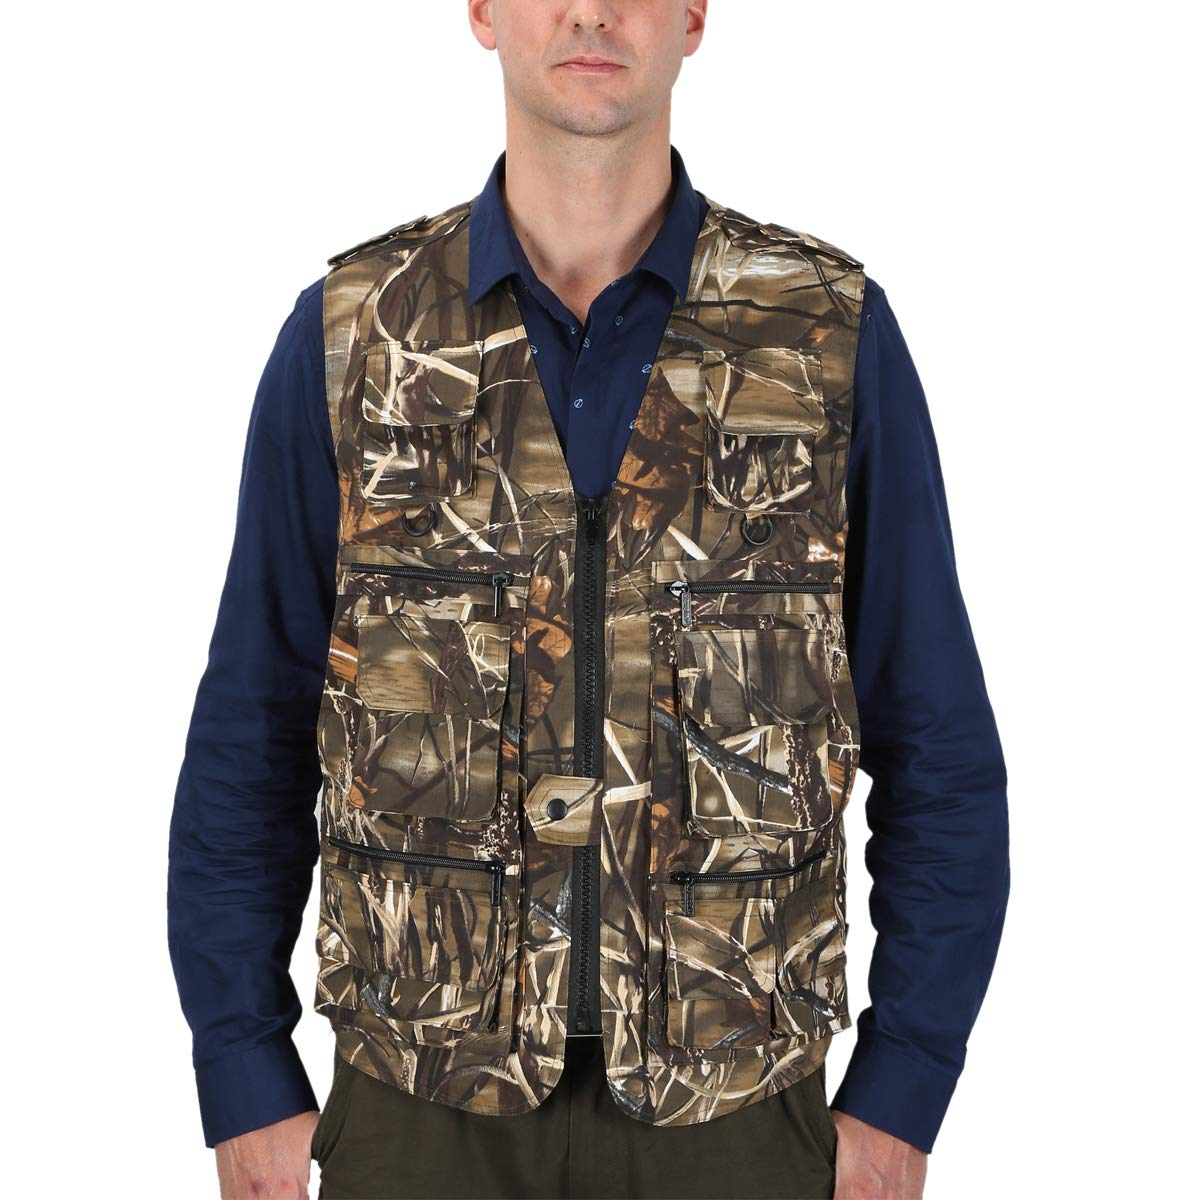 LUSI MADAM Mens Outdoor Vest Multi-Pockets Casual Vest for Work Fishing Photography Journalist (Bamboo Camo, Small)